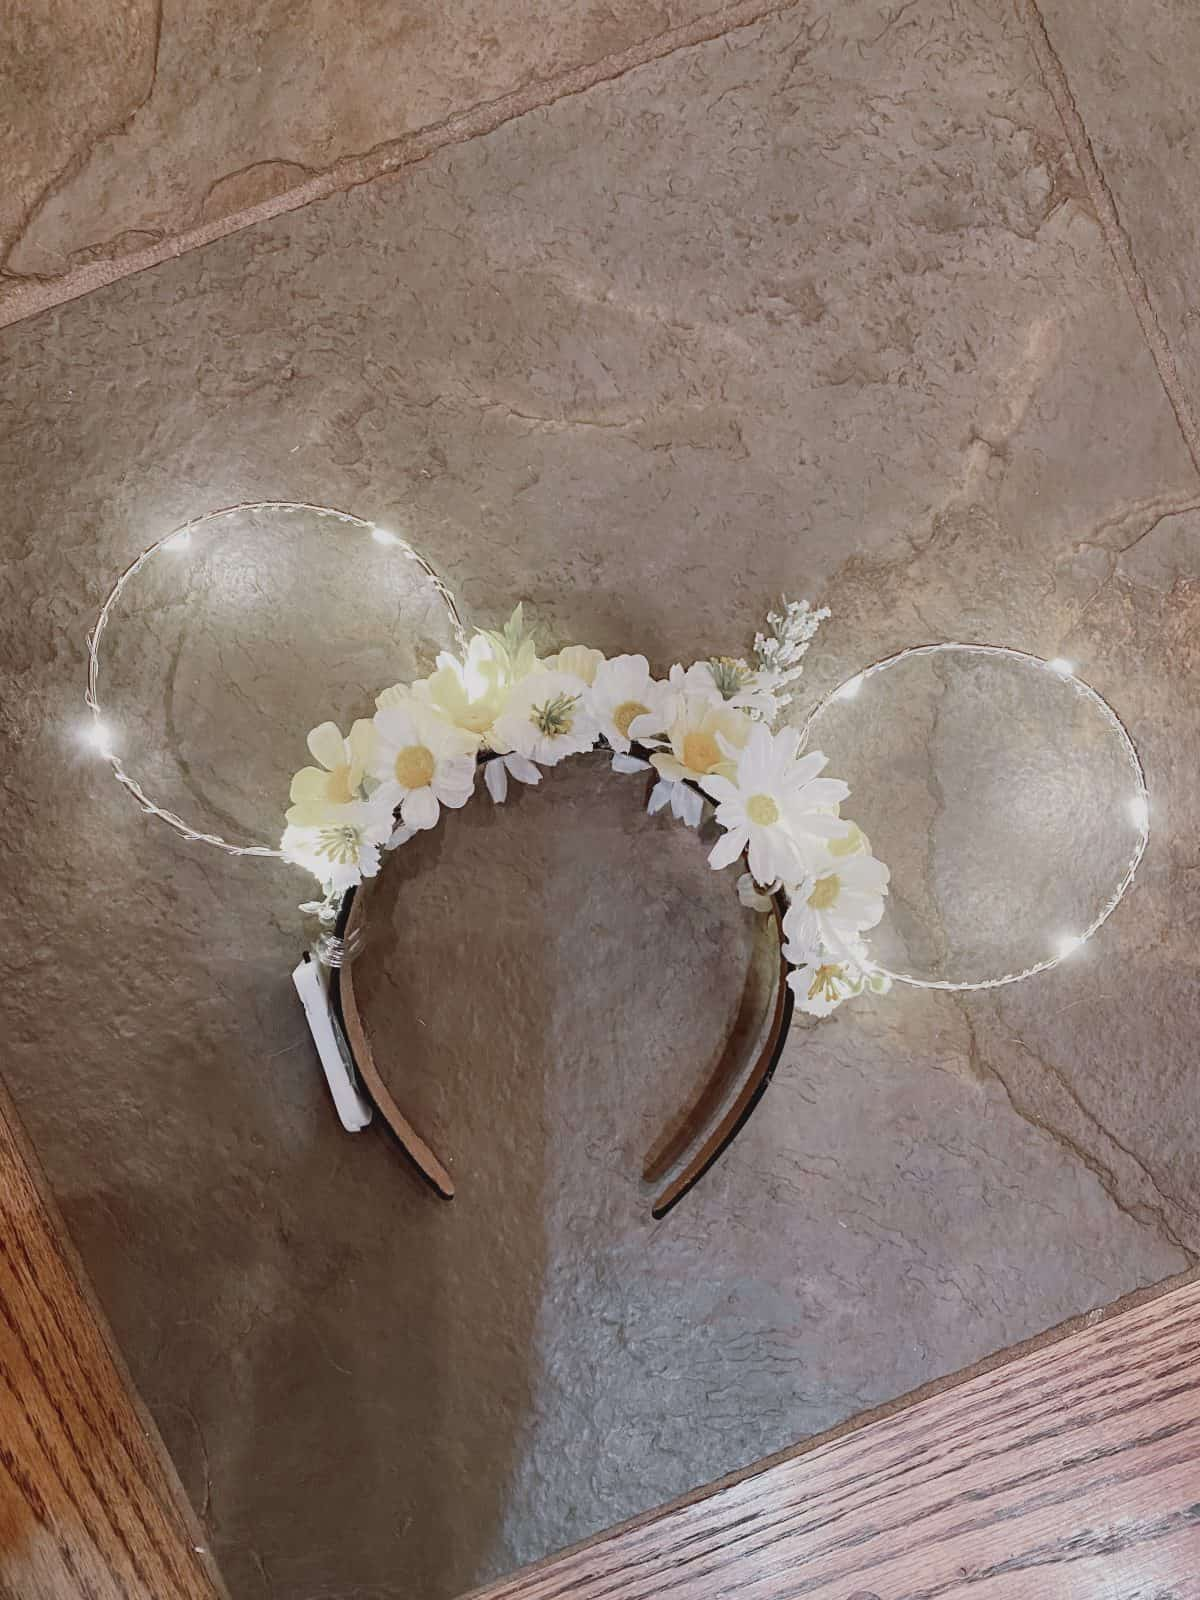 wire mickey ears with flowers and fairy lights on a grey tile floor